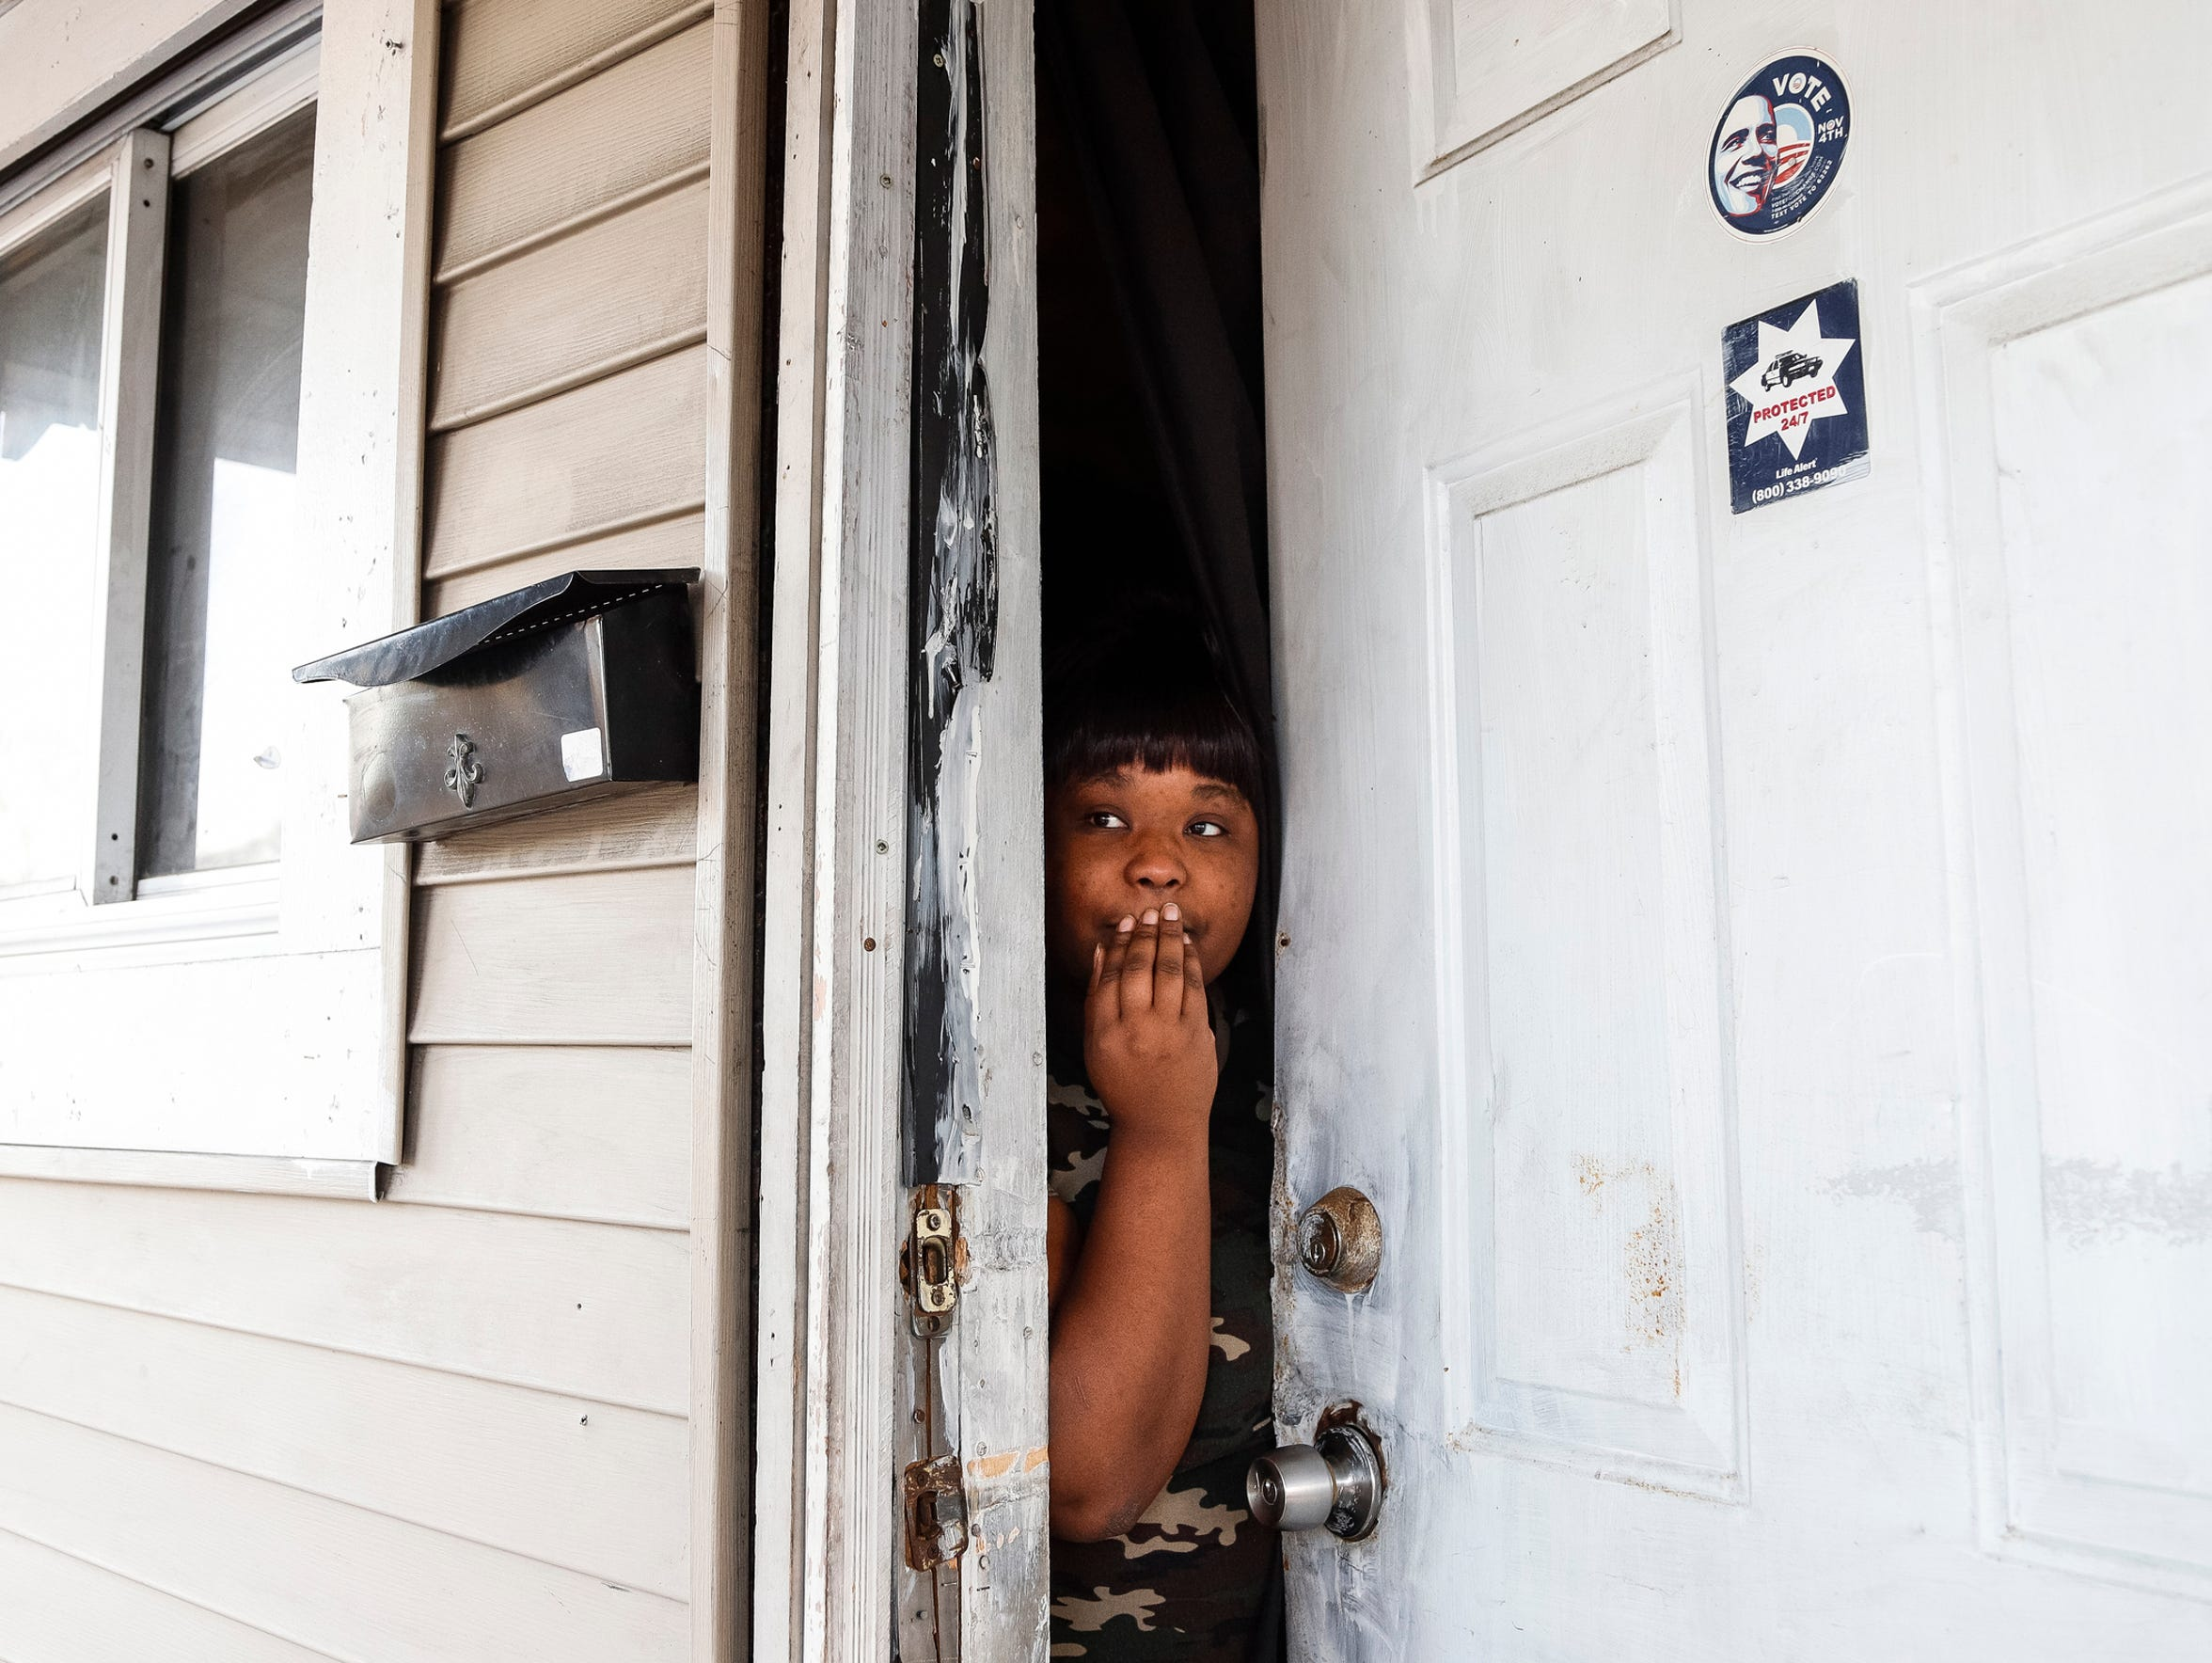 Pauletta Lawrence talks to the Free Press in December from the door of a land bank house on Richton where Immanuel Foster, 7, was found tortured in 2014. The boy died. (Photo taken Dec. 20, 2017)